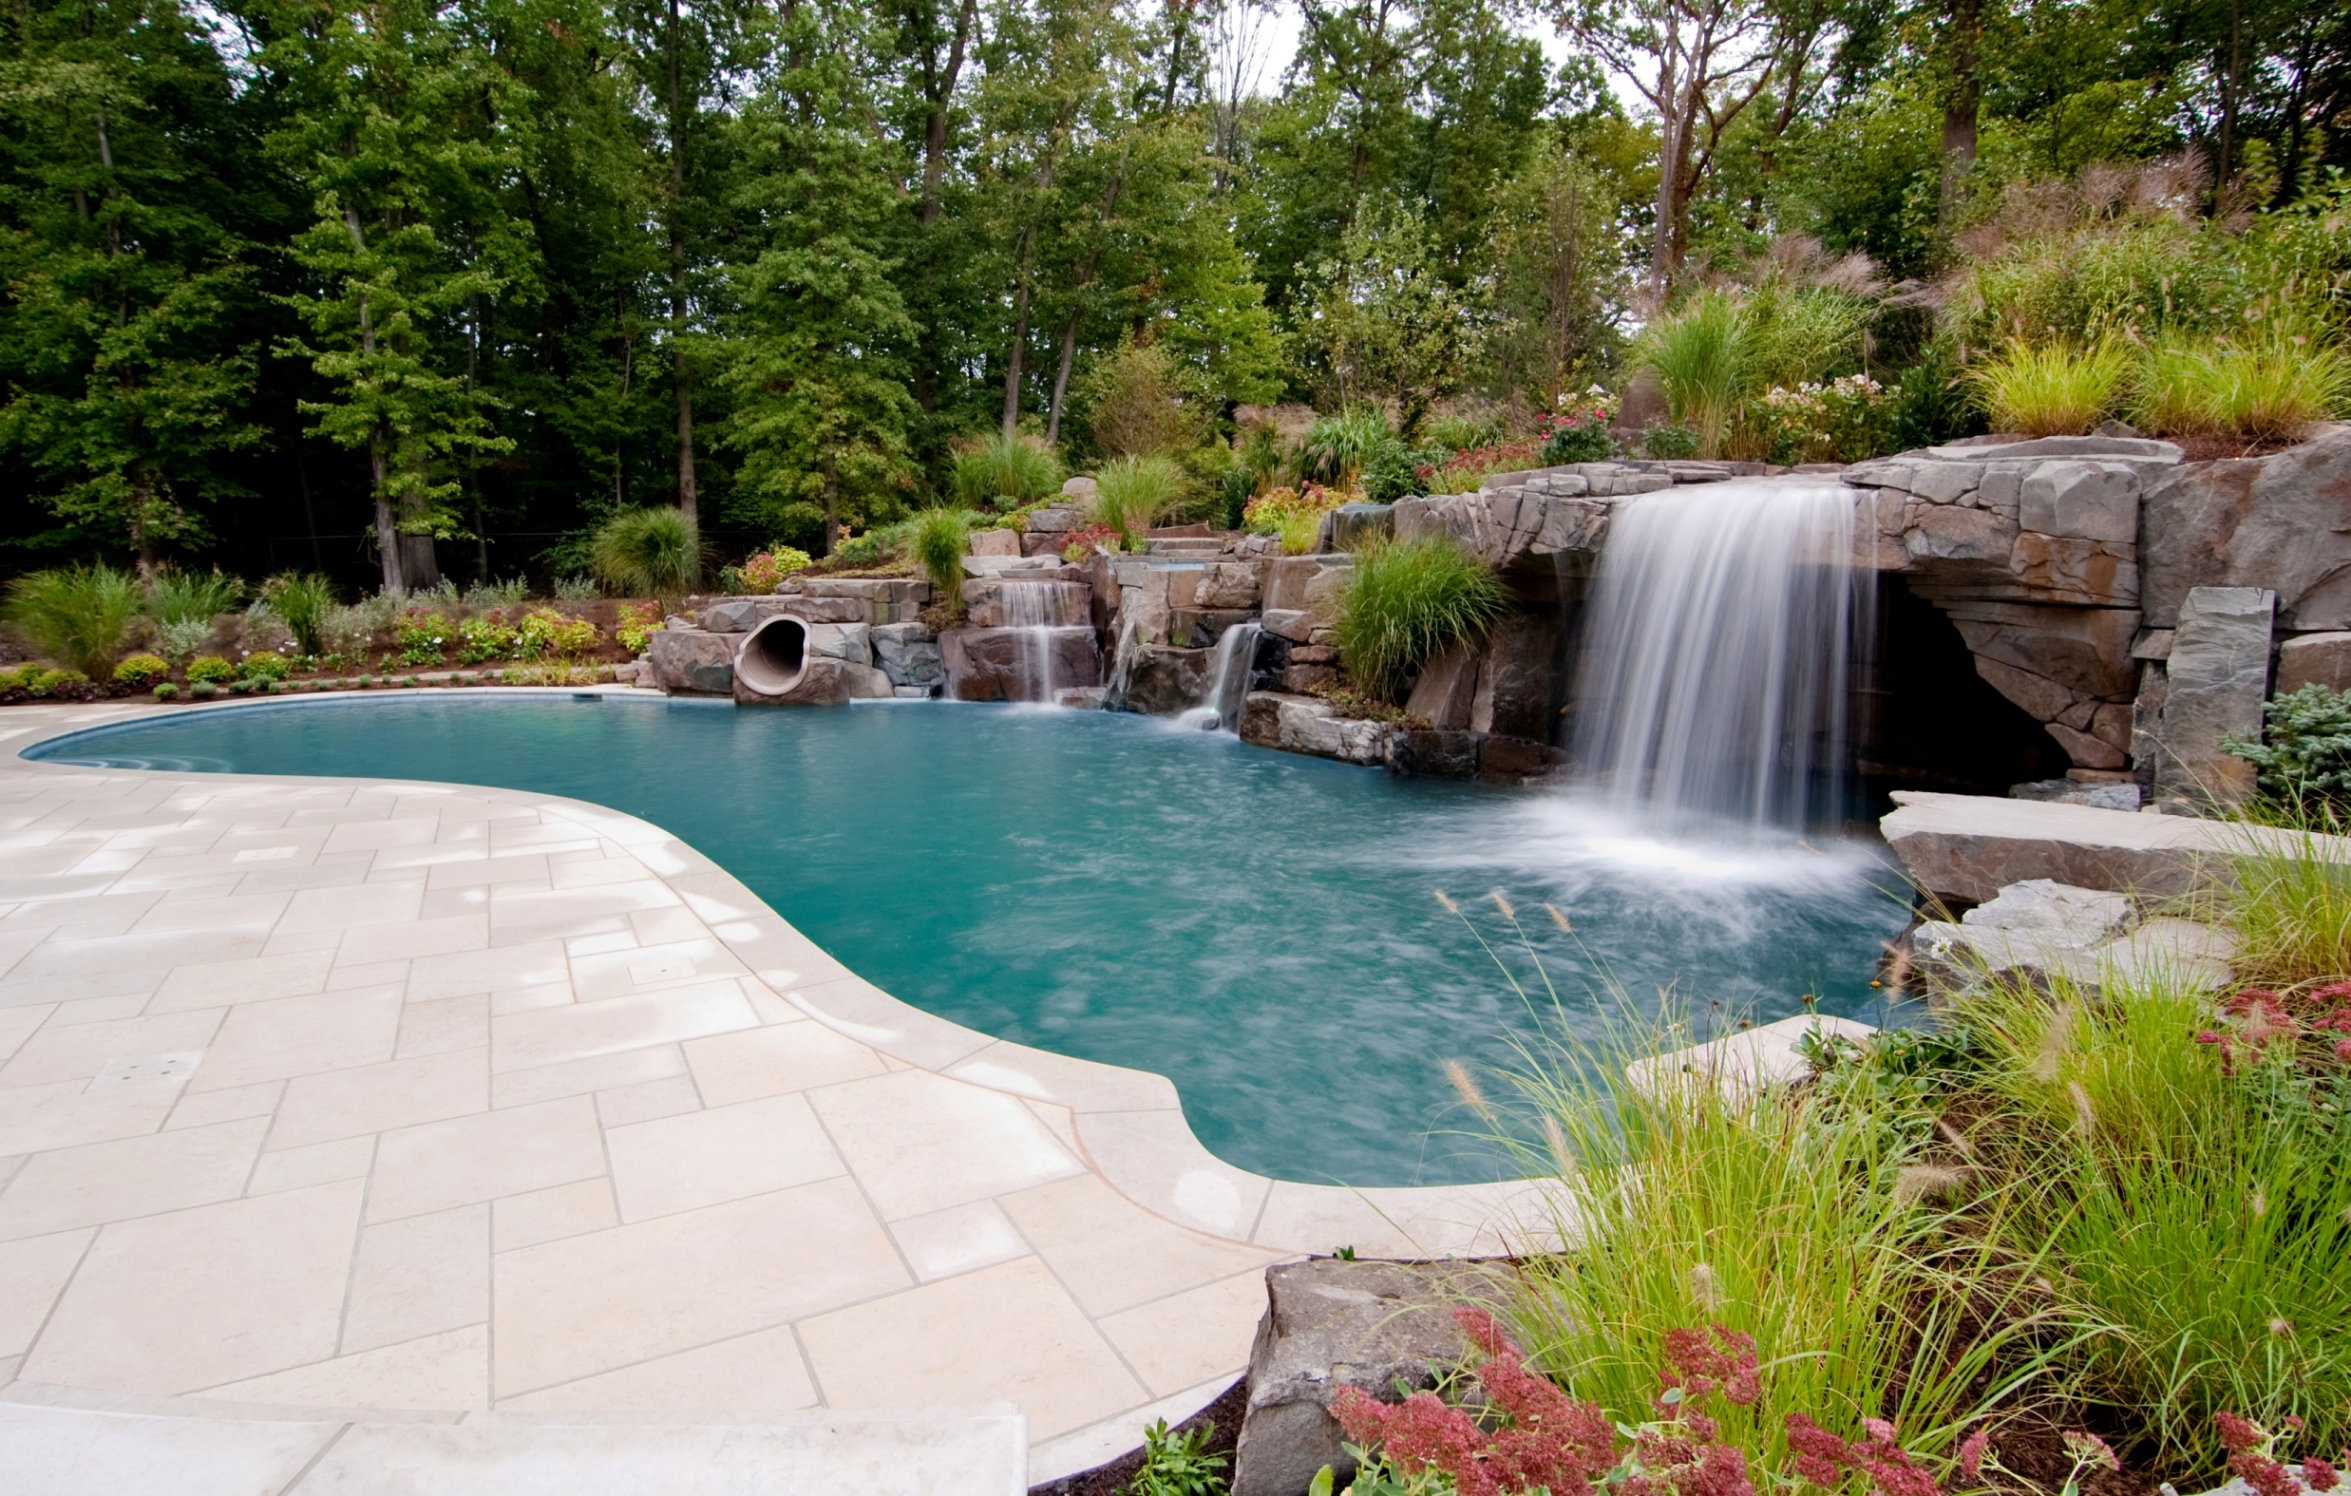 New jersey inground pool company earns international award for Pool design company